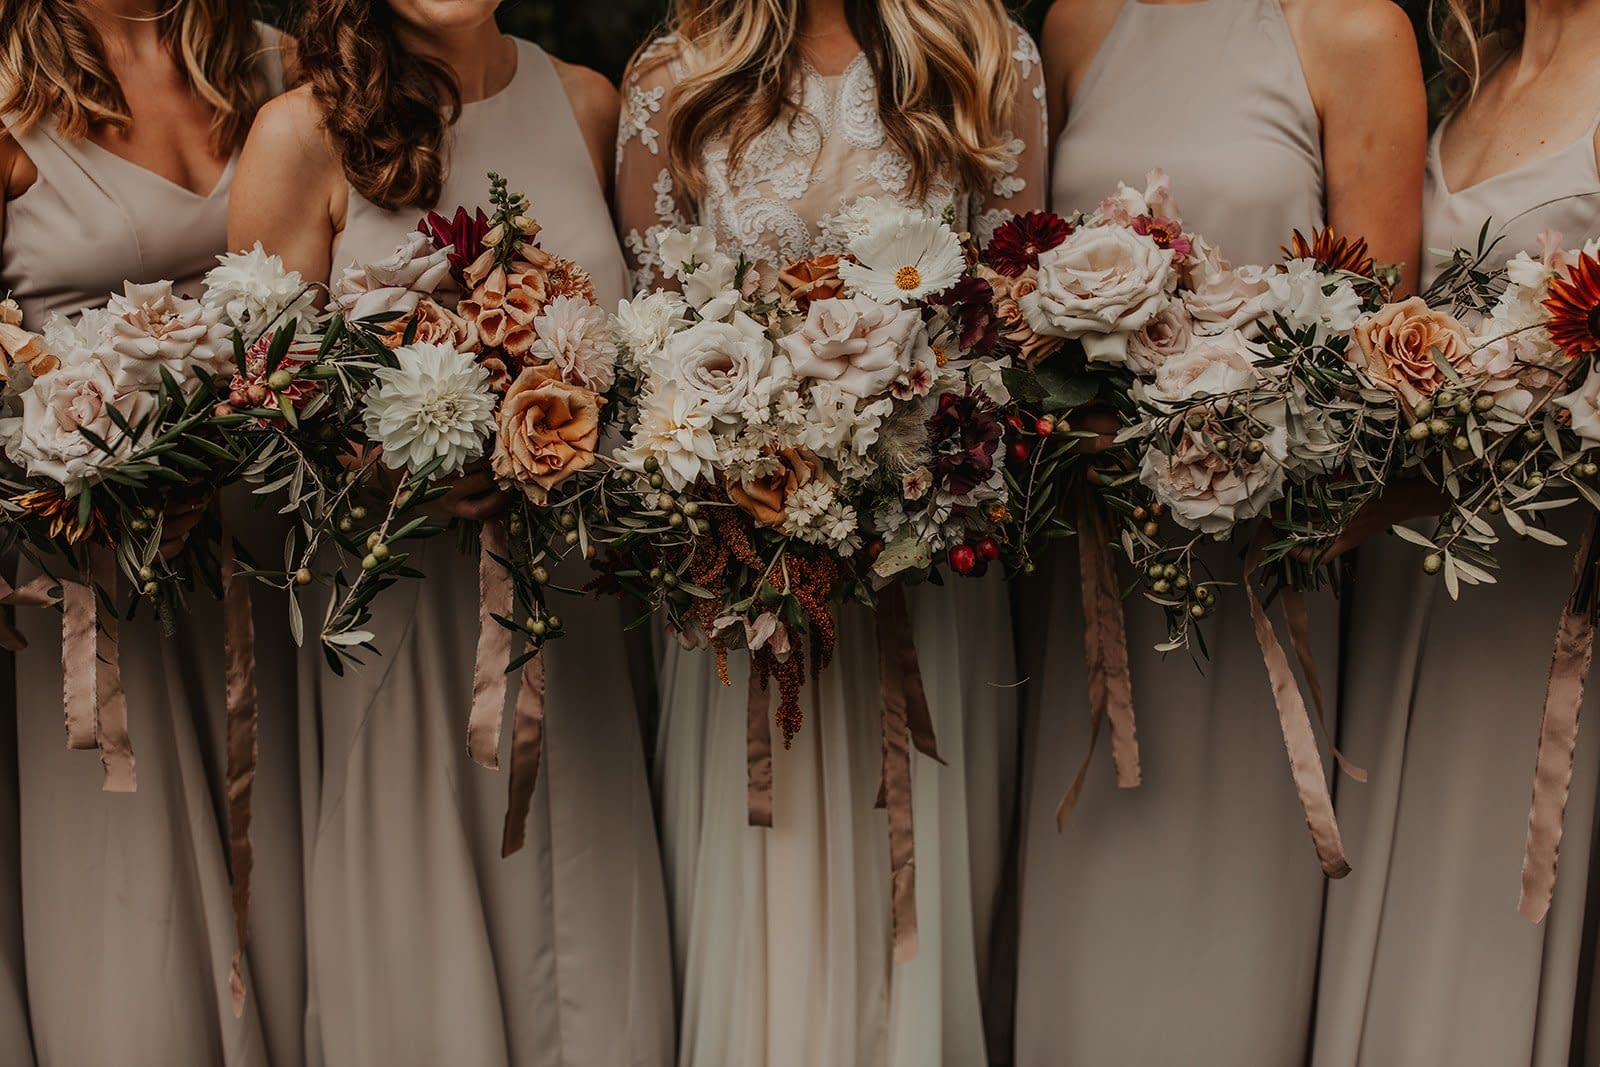 Bride and bridesmaids holding fall bouquets of garden roses, cosmos, and dahlias with flowing hand dyed silk ribbons in Stowe by Nectar and Root, Vermont wedding florist.